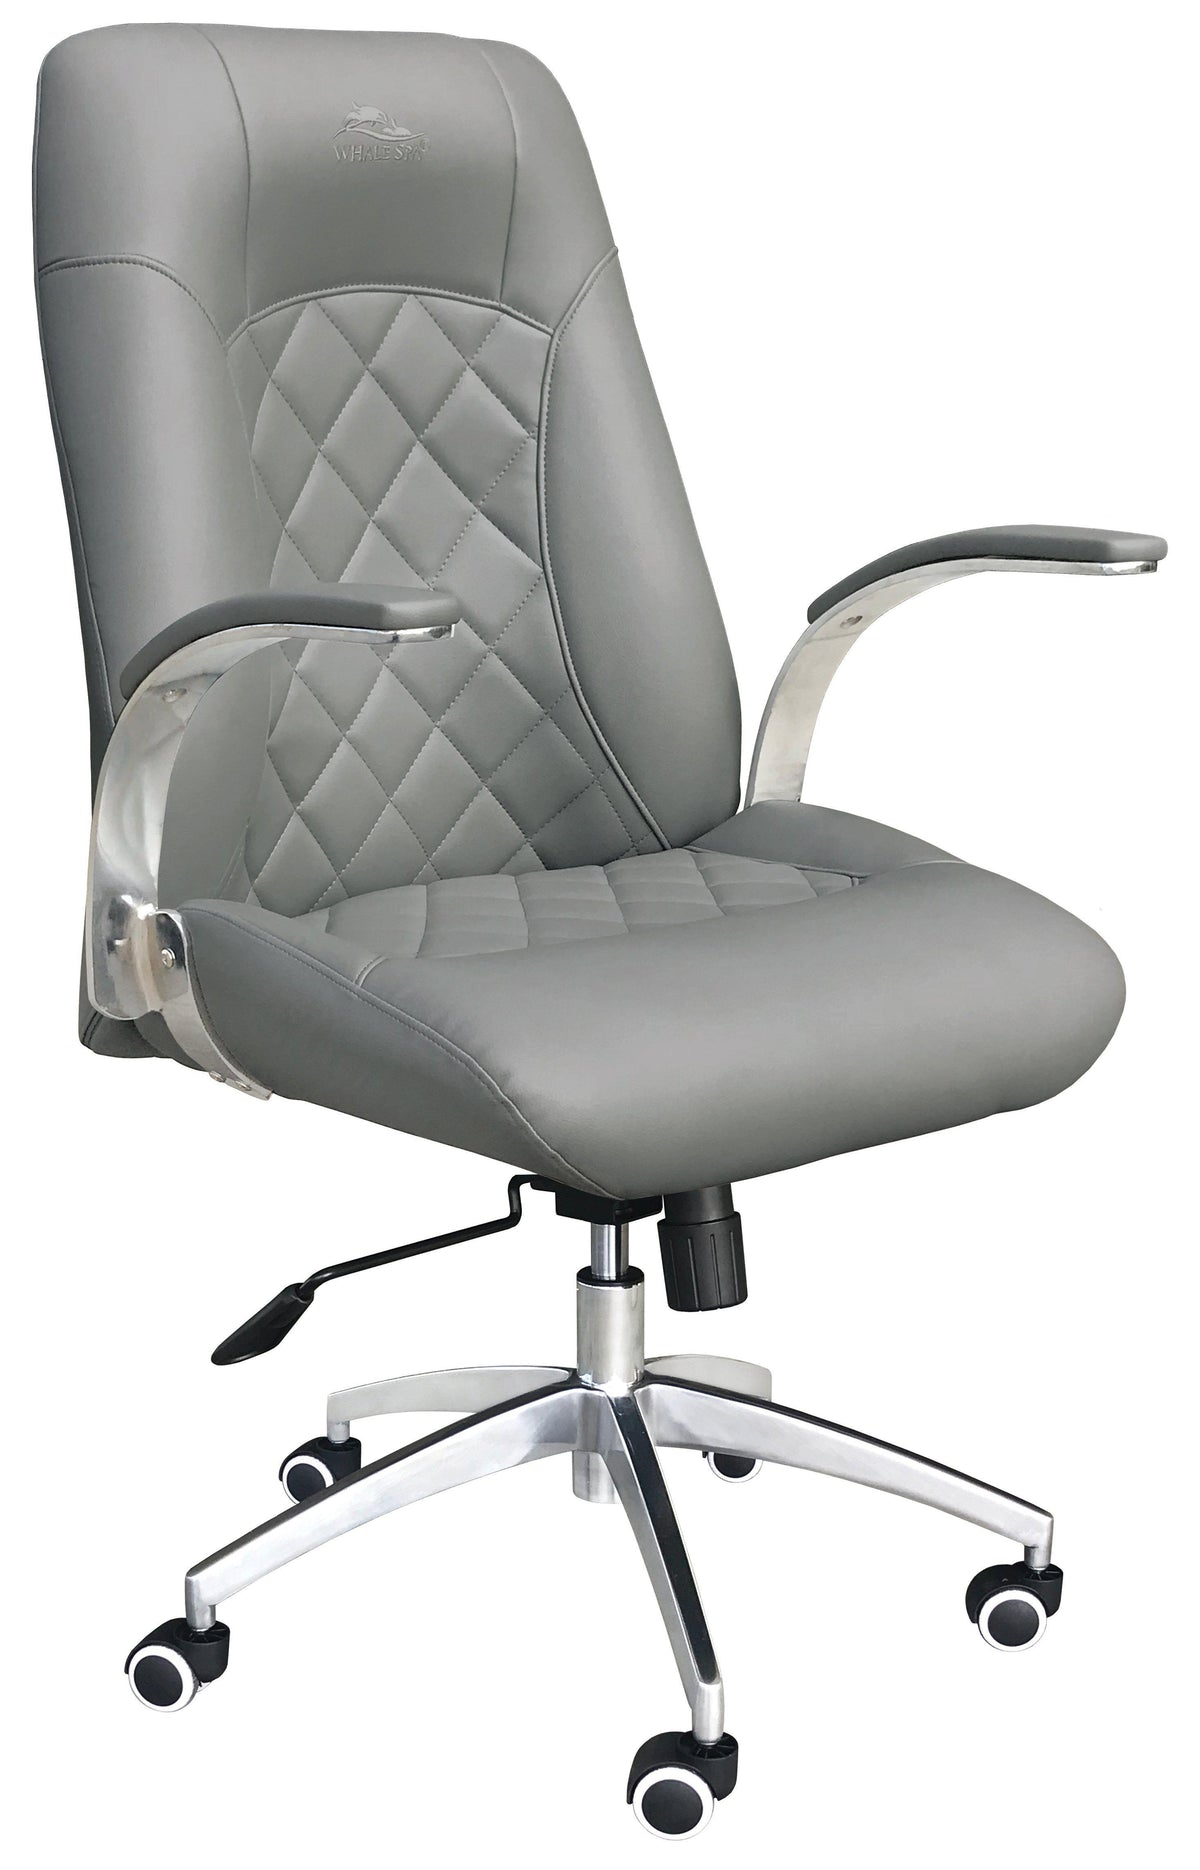 Whale Spa - Rolling Customer Chair Diamond - Superb Nail Supply